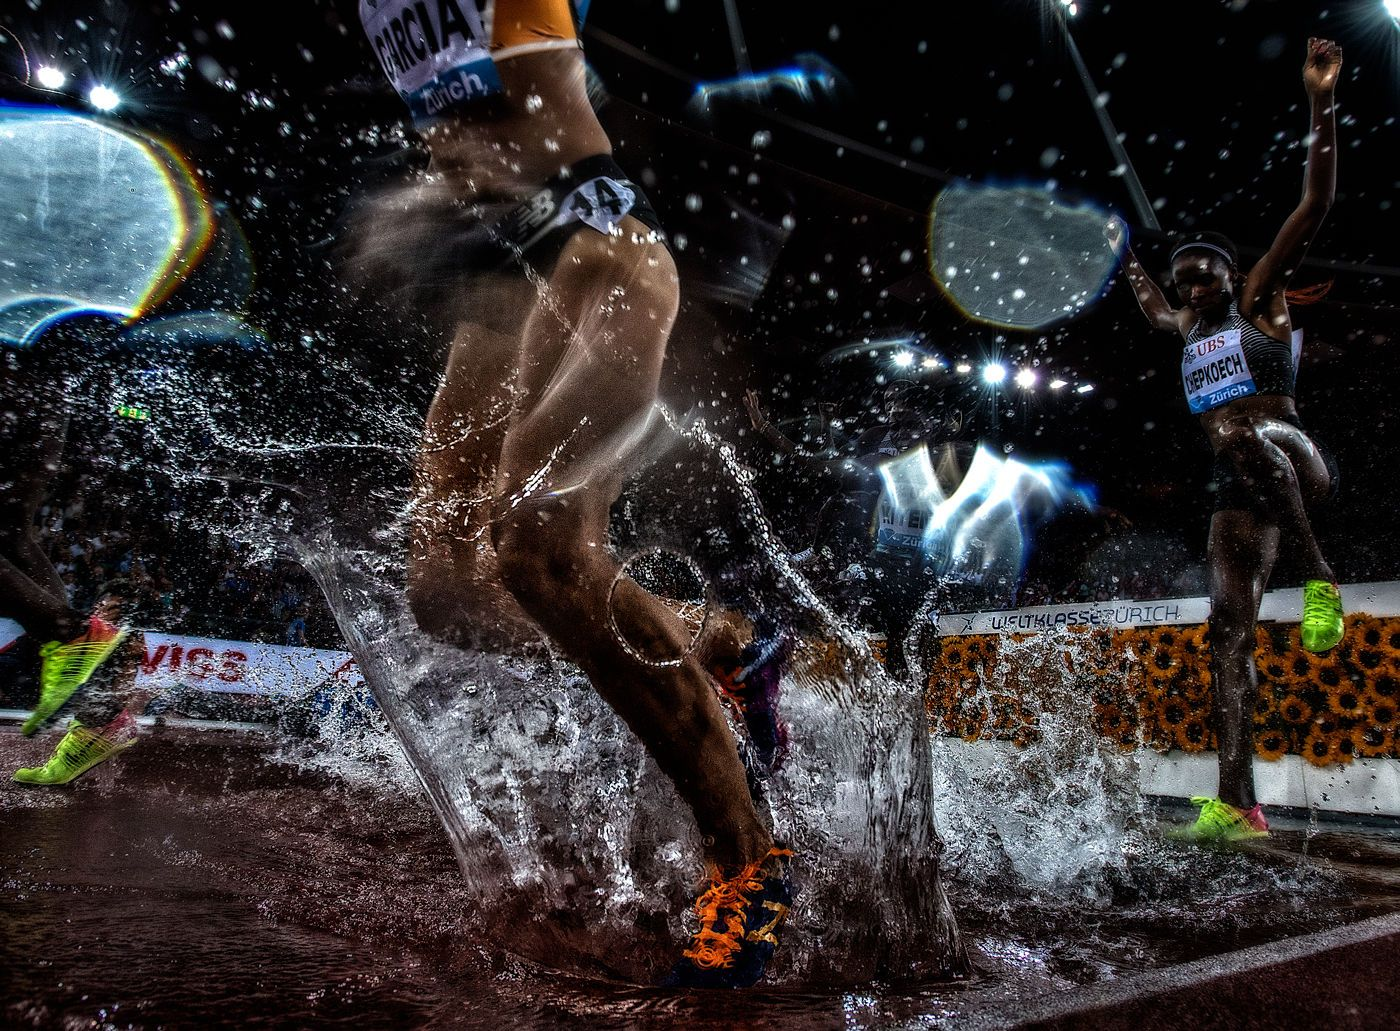 1r2016_weltklasse_zurich_steeple_w_splash_3_jeff_cohen_photo_224_web.jpg